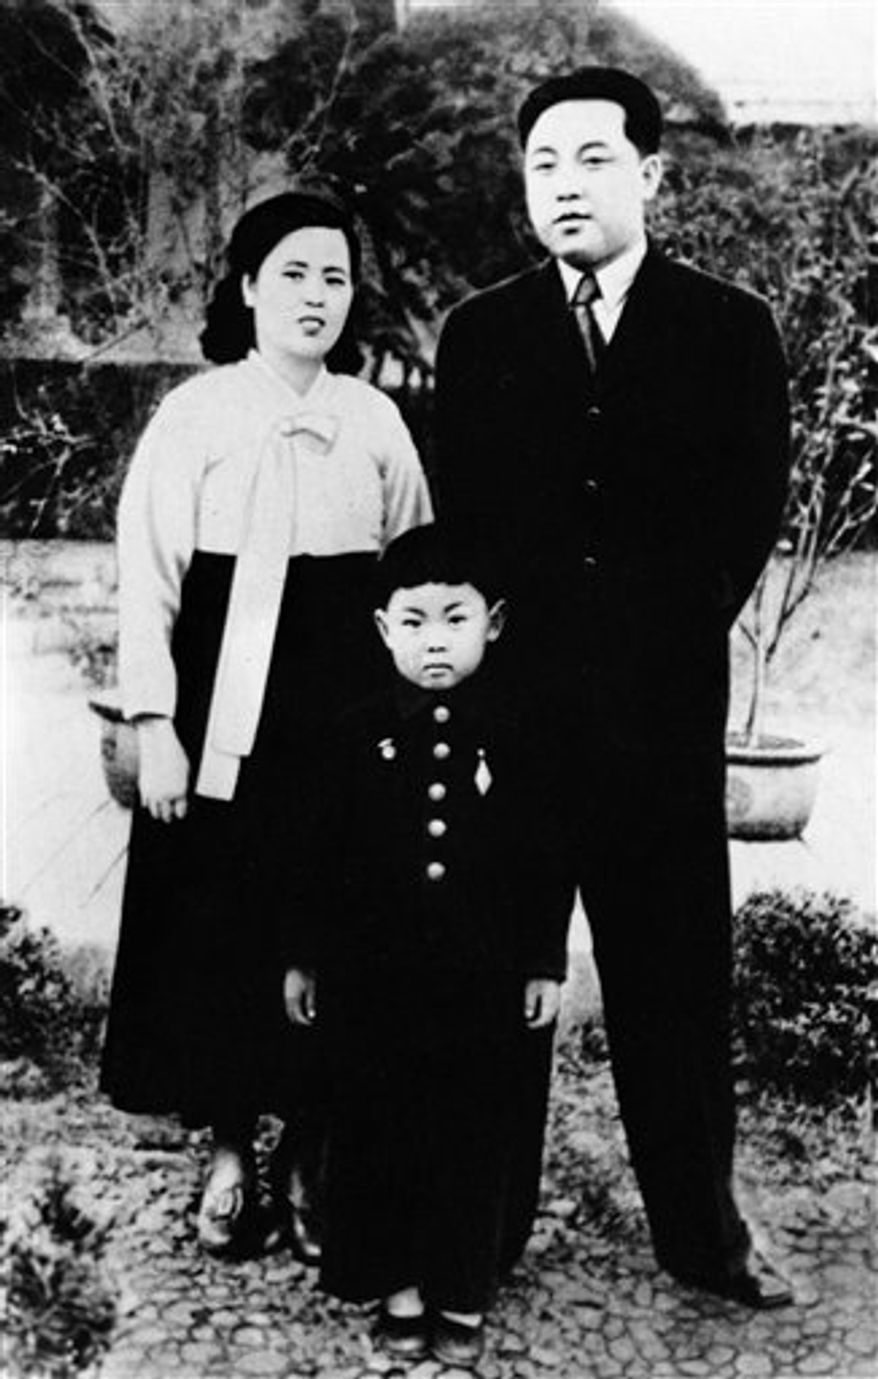 In this undated photo from North Korea's official Korean Central News Agency, Kim Jong-iI (center) is pictured with his parents, Kim Jong-suk (left) and Kim Il-sung. (AP Photo/Korean Central News Agency via Korea News Service)